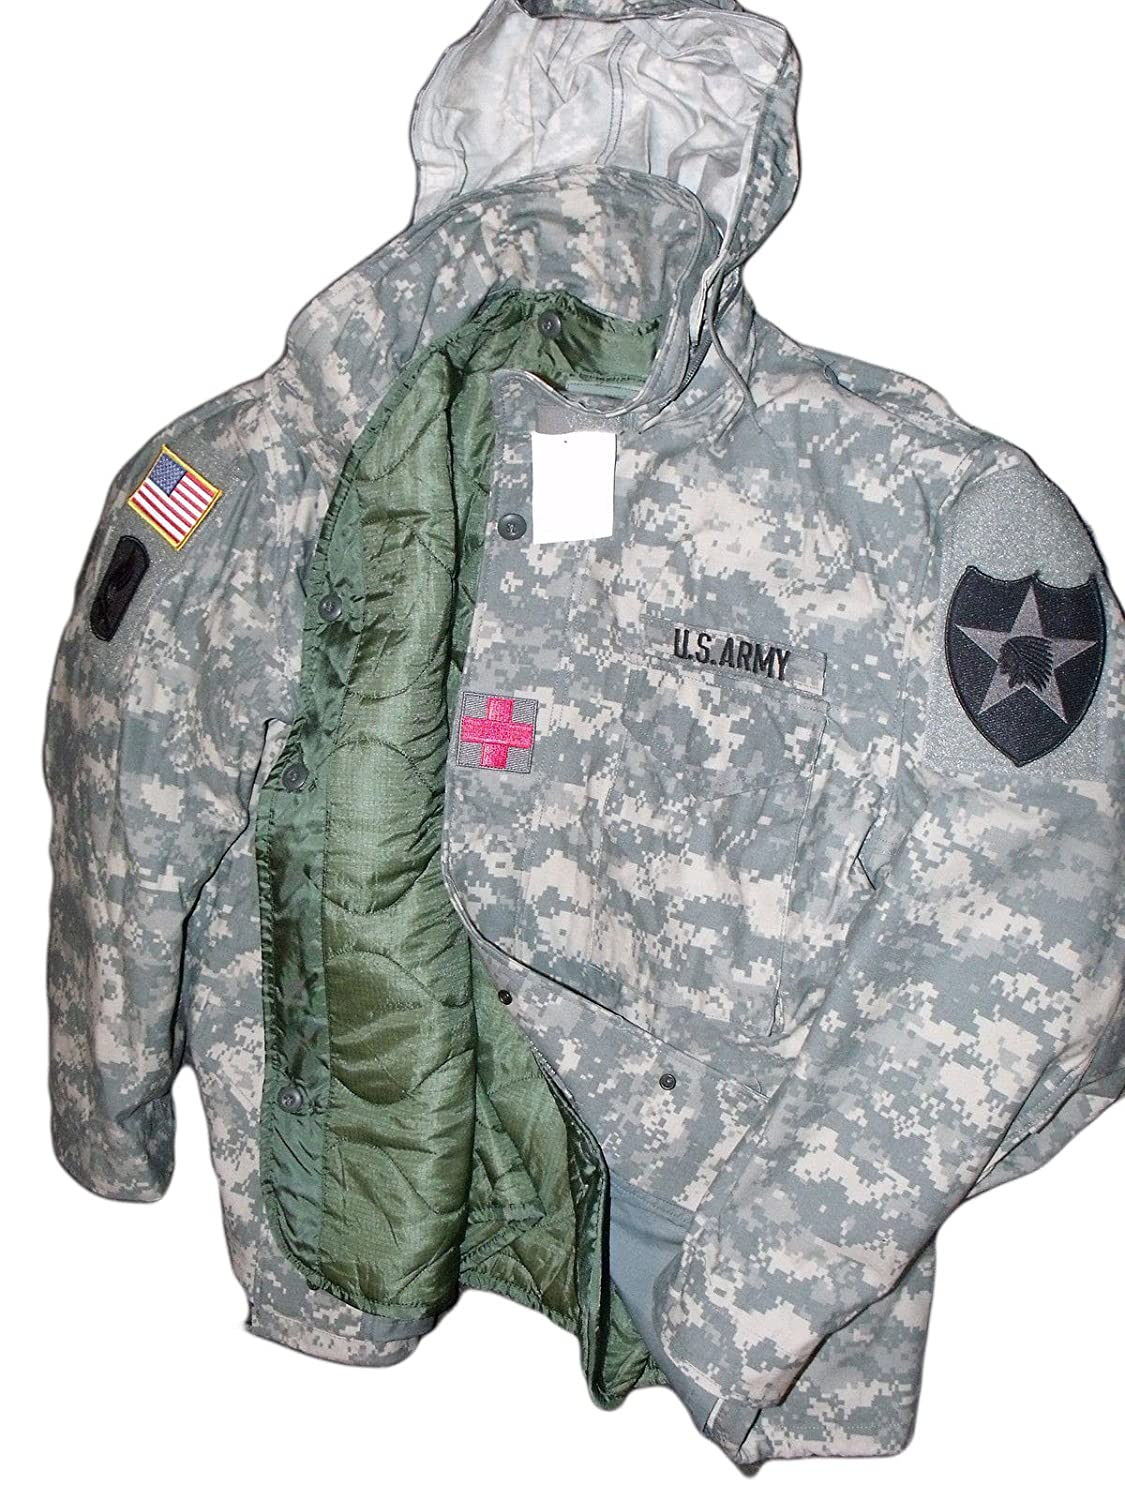 US Army Military GI M-65 ACU Camo Field Coat Jacket + Liner + Patches